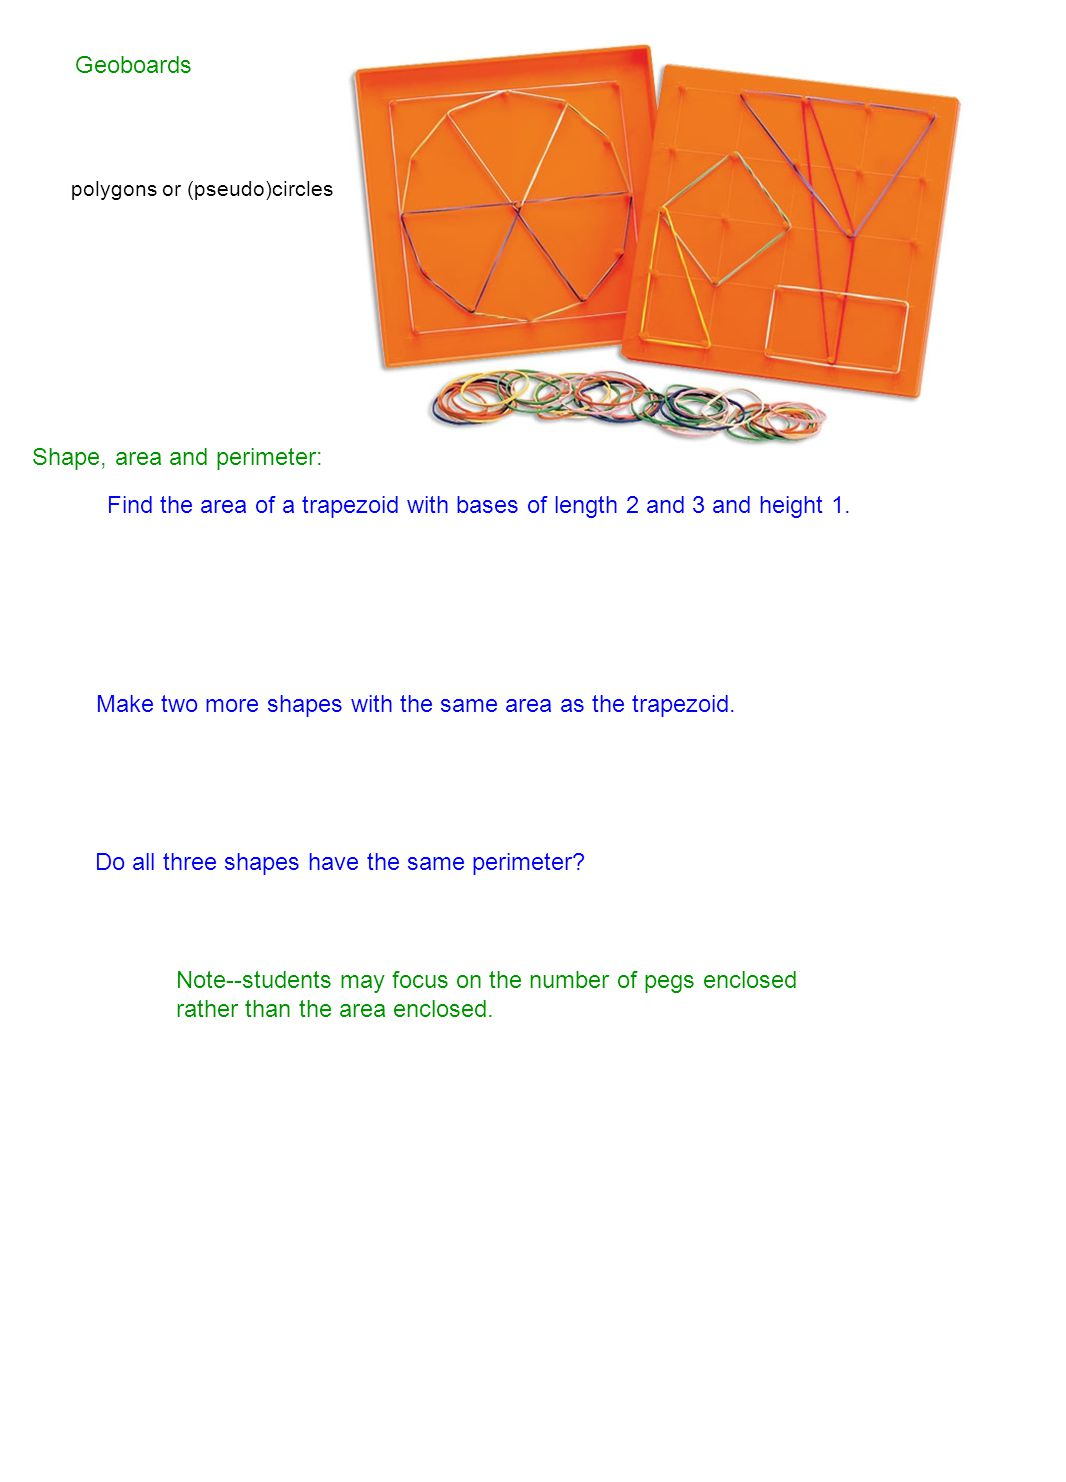 Shape, area and perimeter: